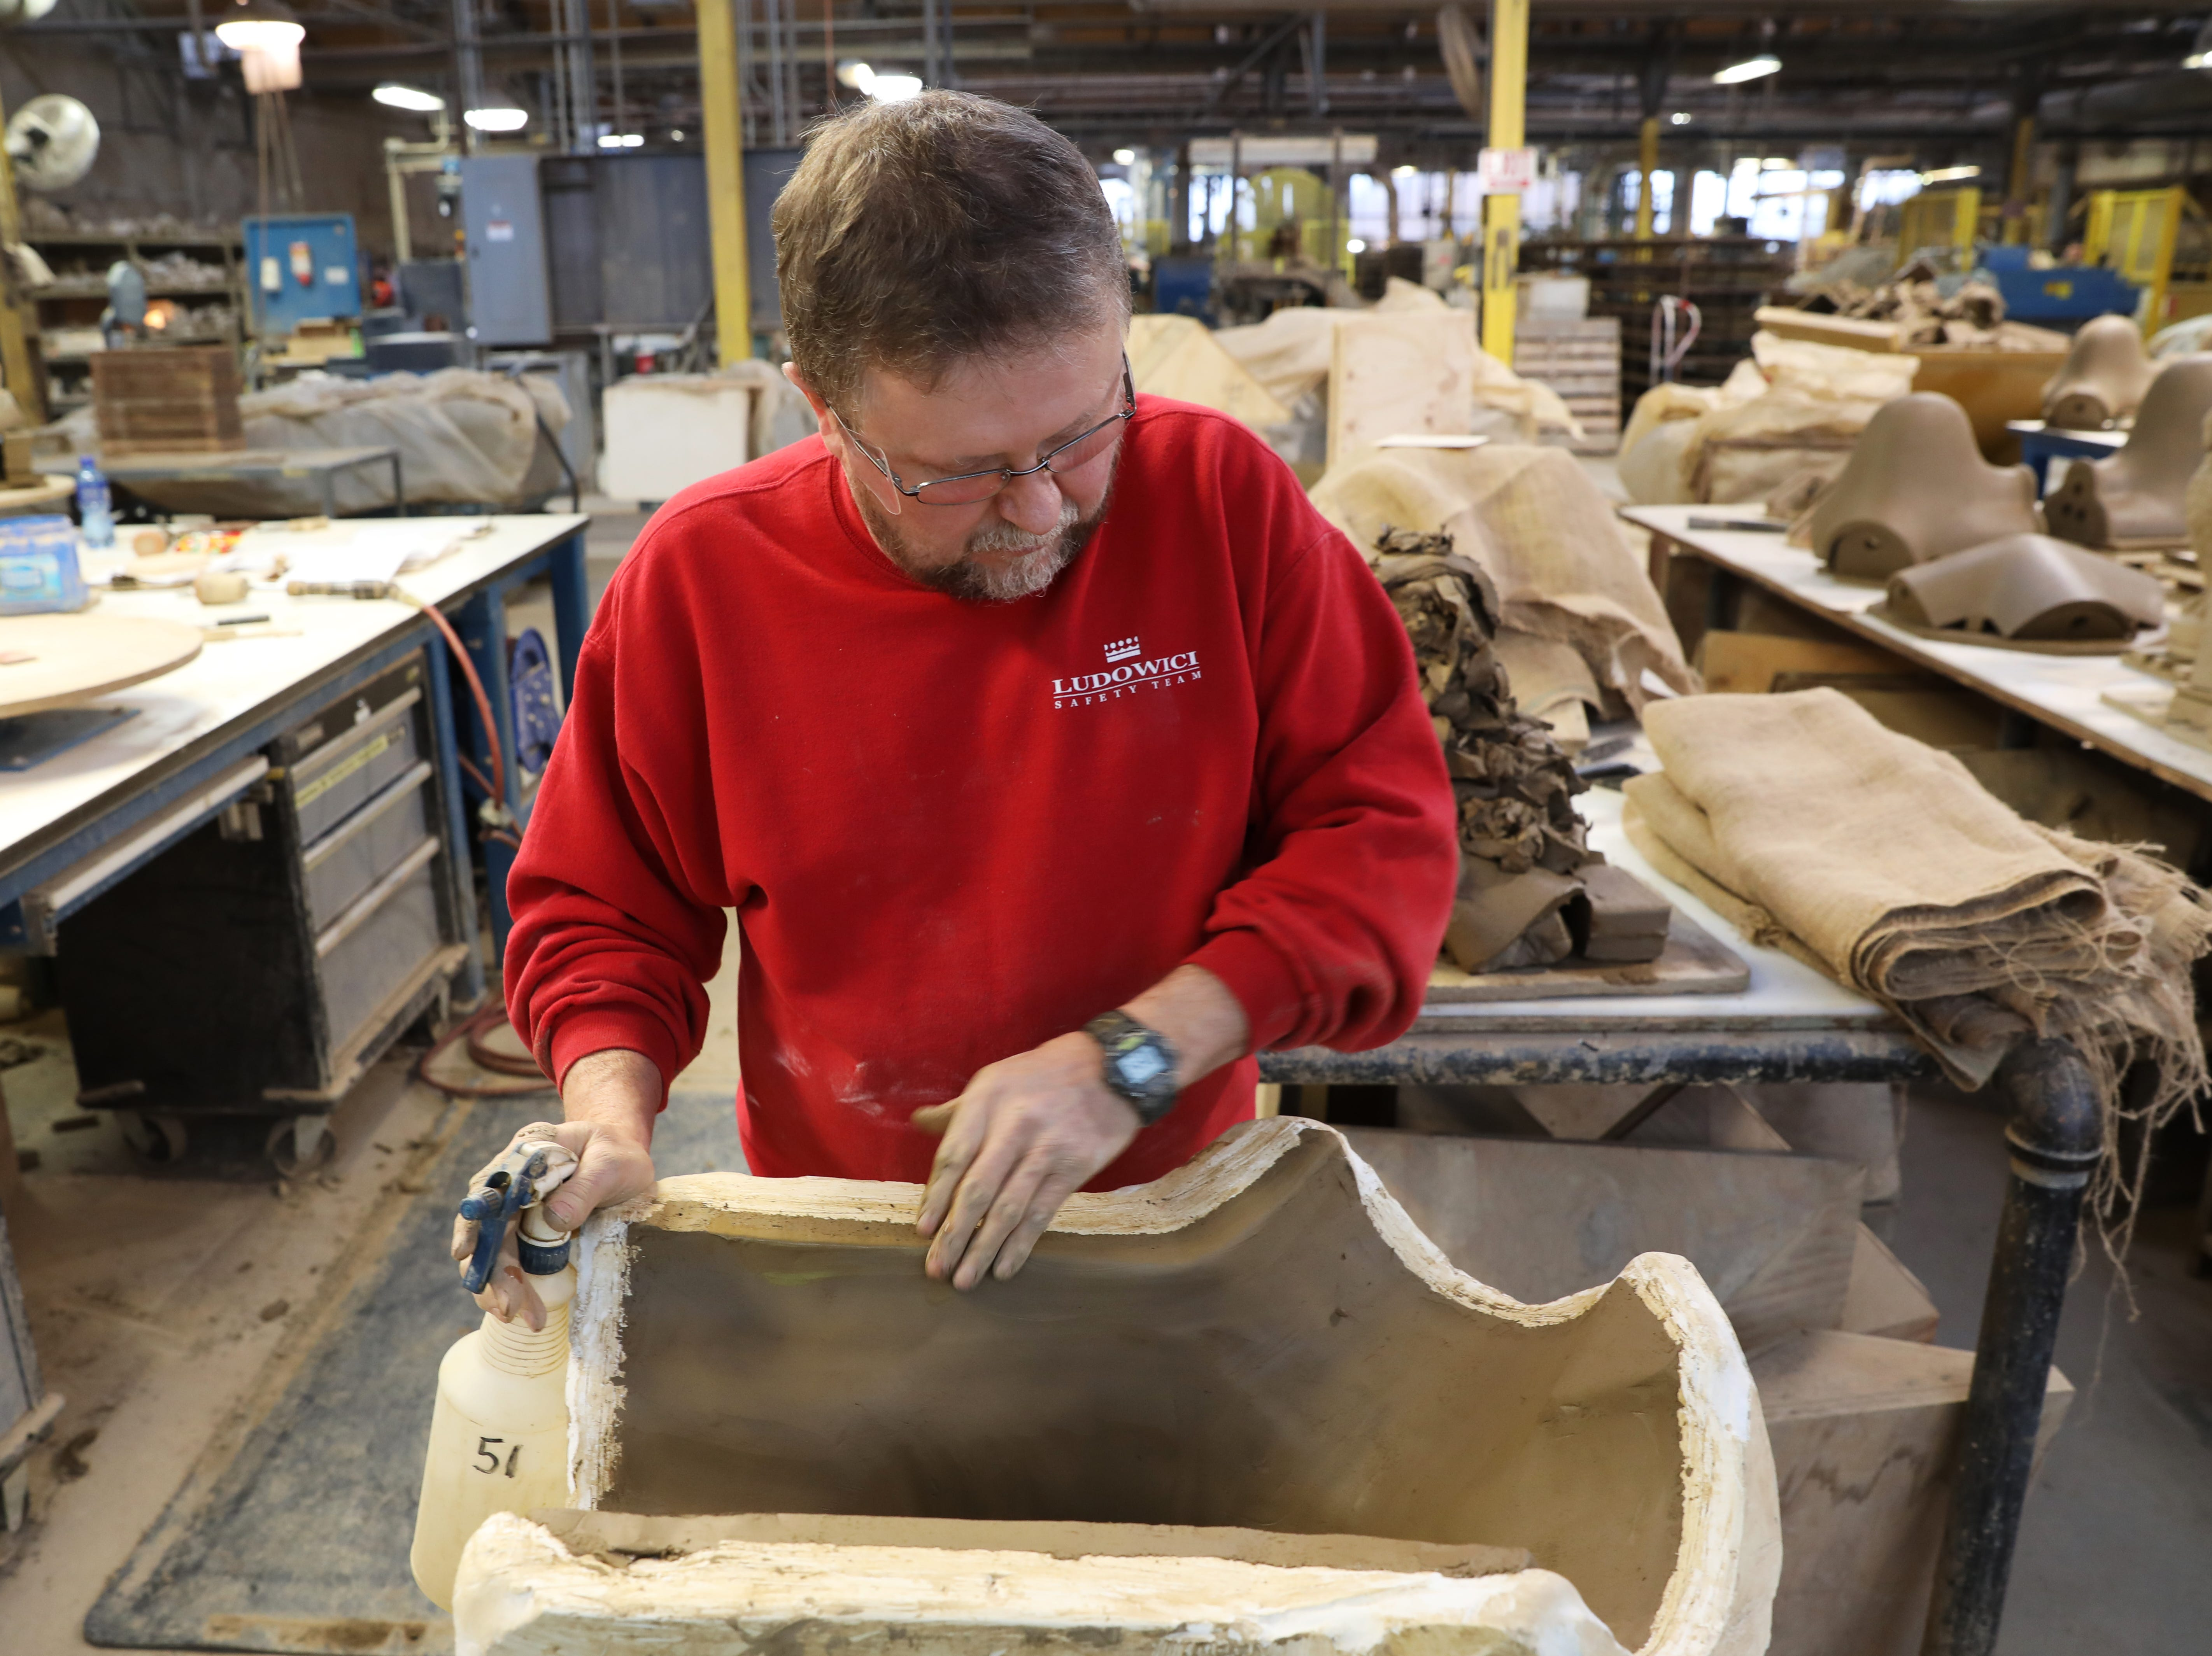 Mike Spencer works on a custom roof moulding at Ludowici Roof Tile Company. Spencer has been on the job at the New Lexington factory for 39 years.